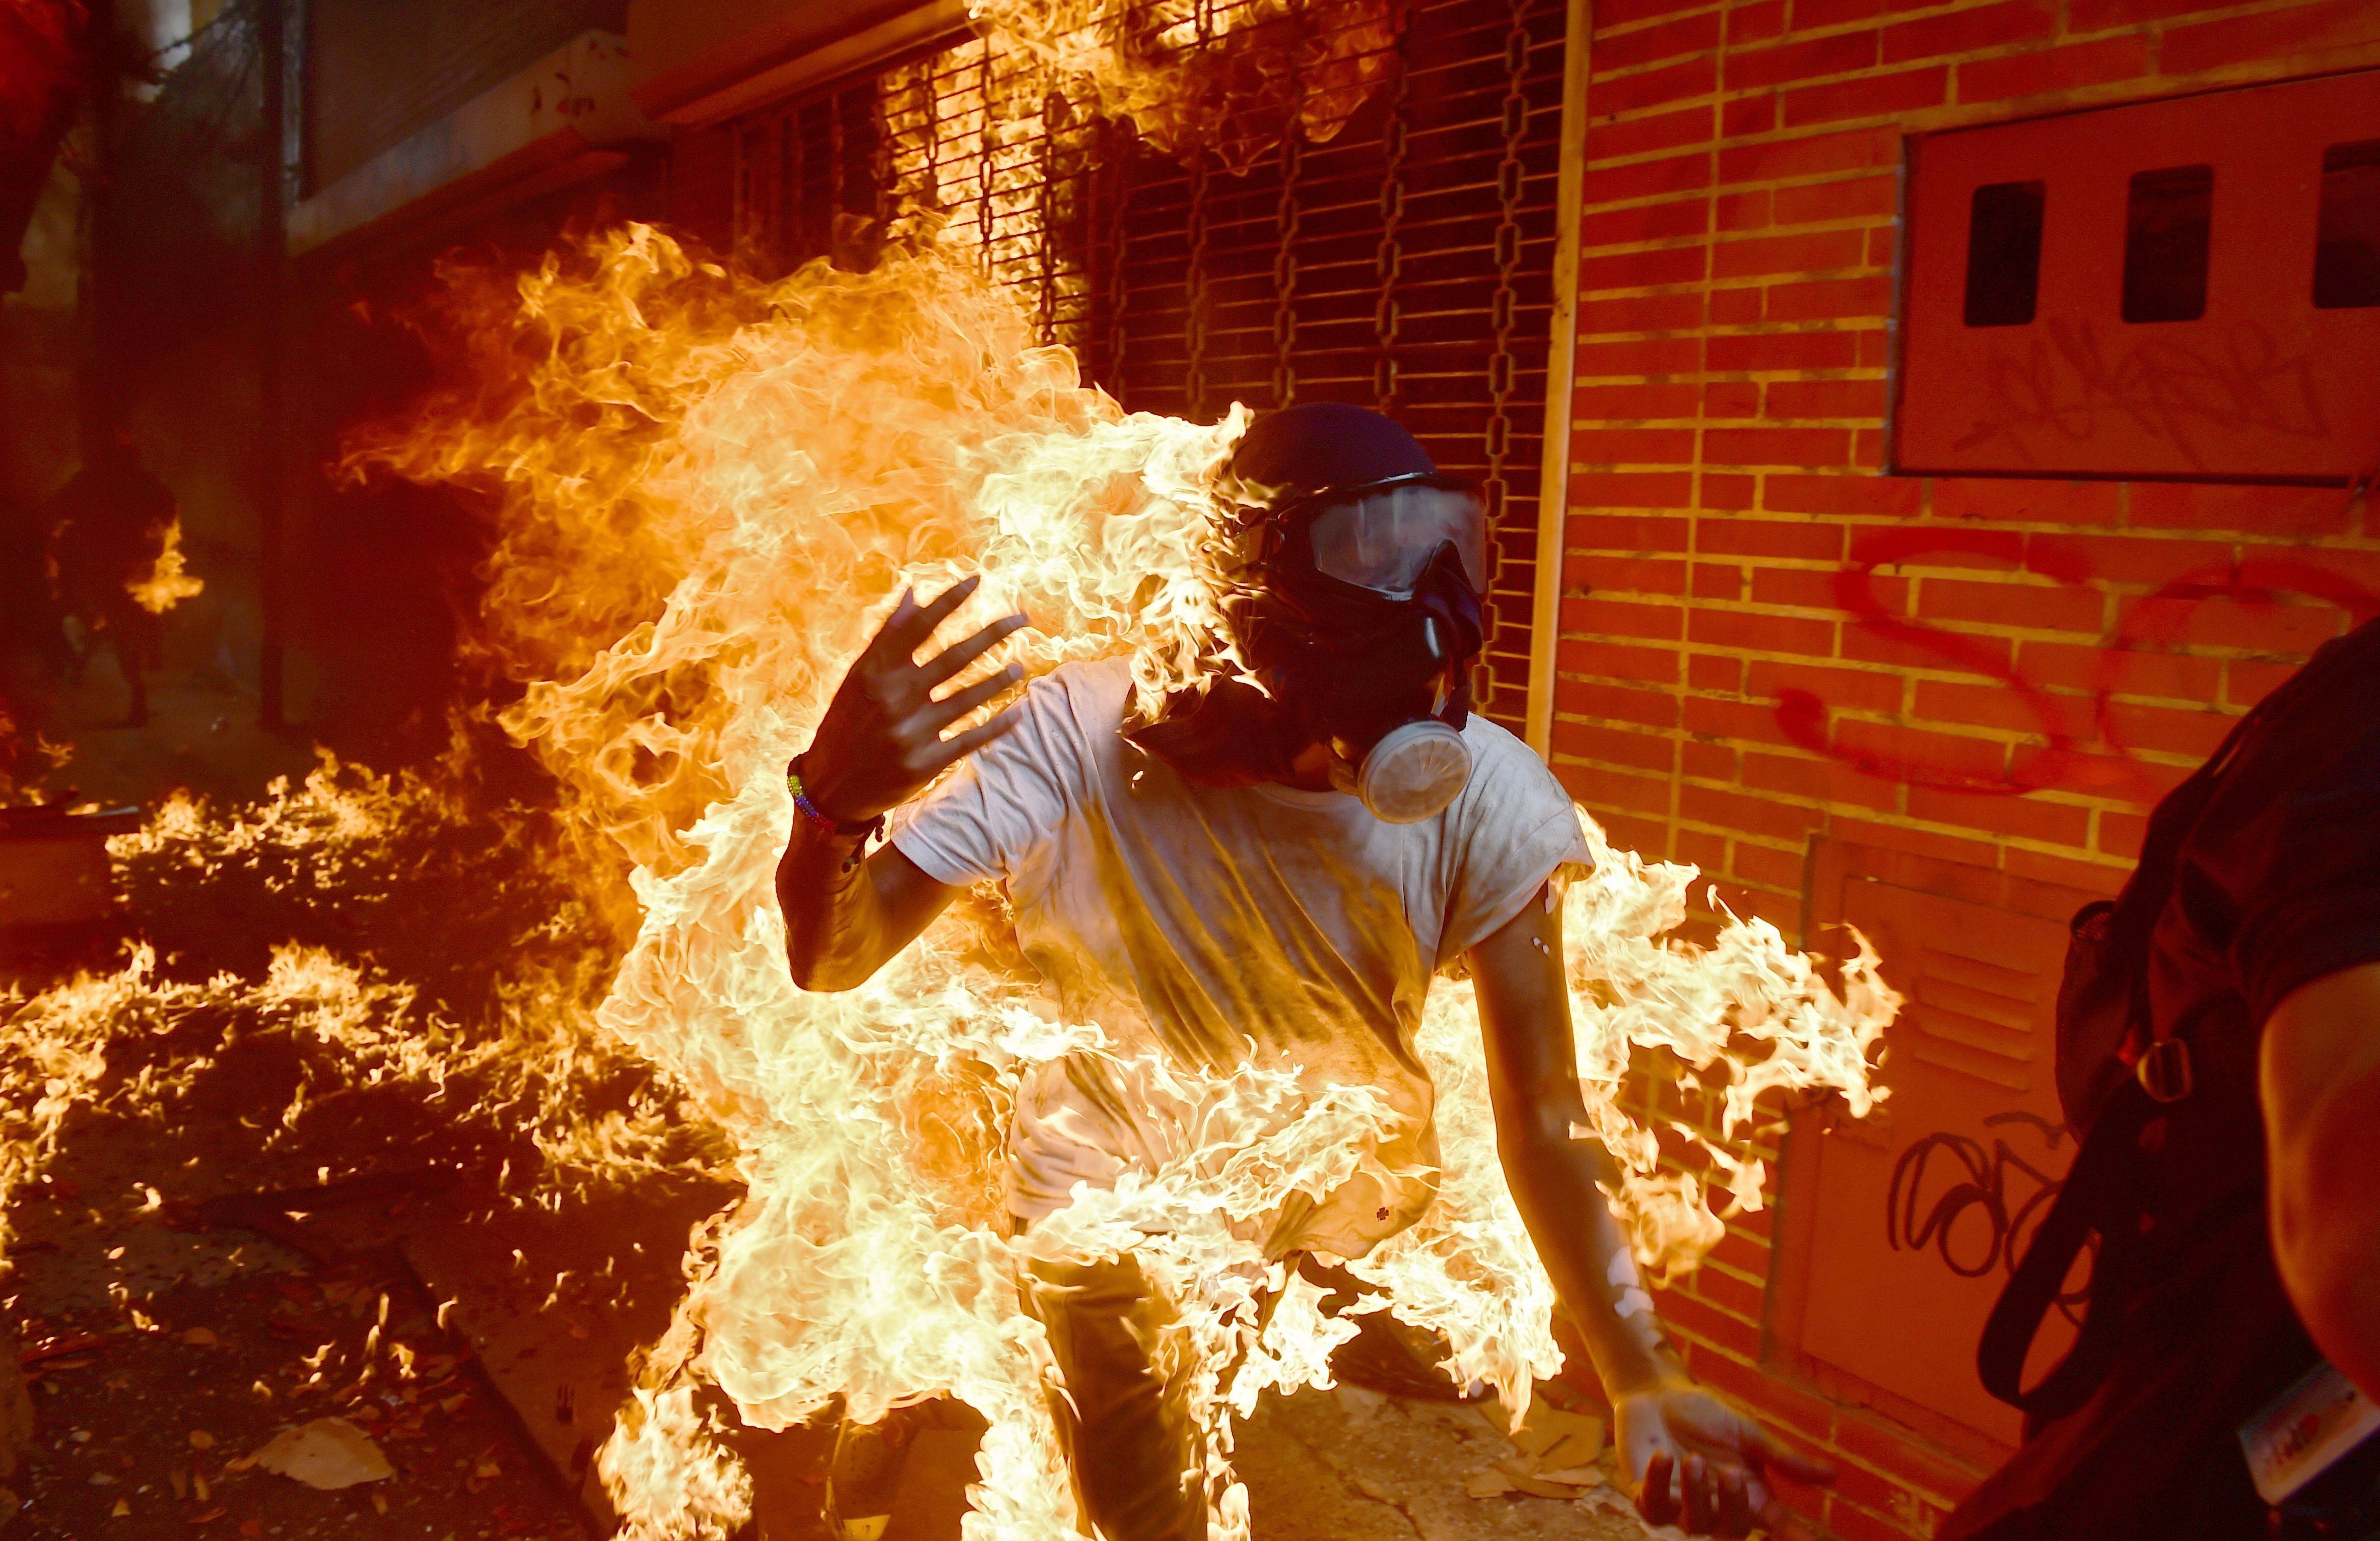 Harrowing Images From Venezuela's Deadly